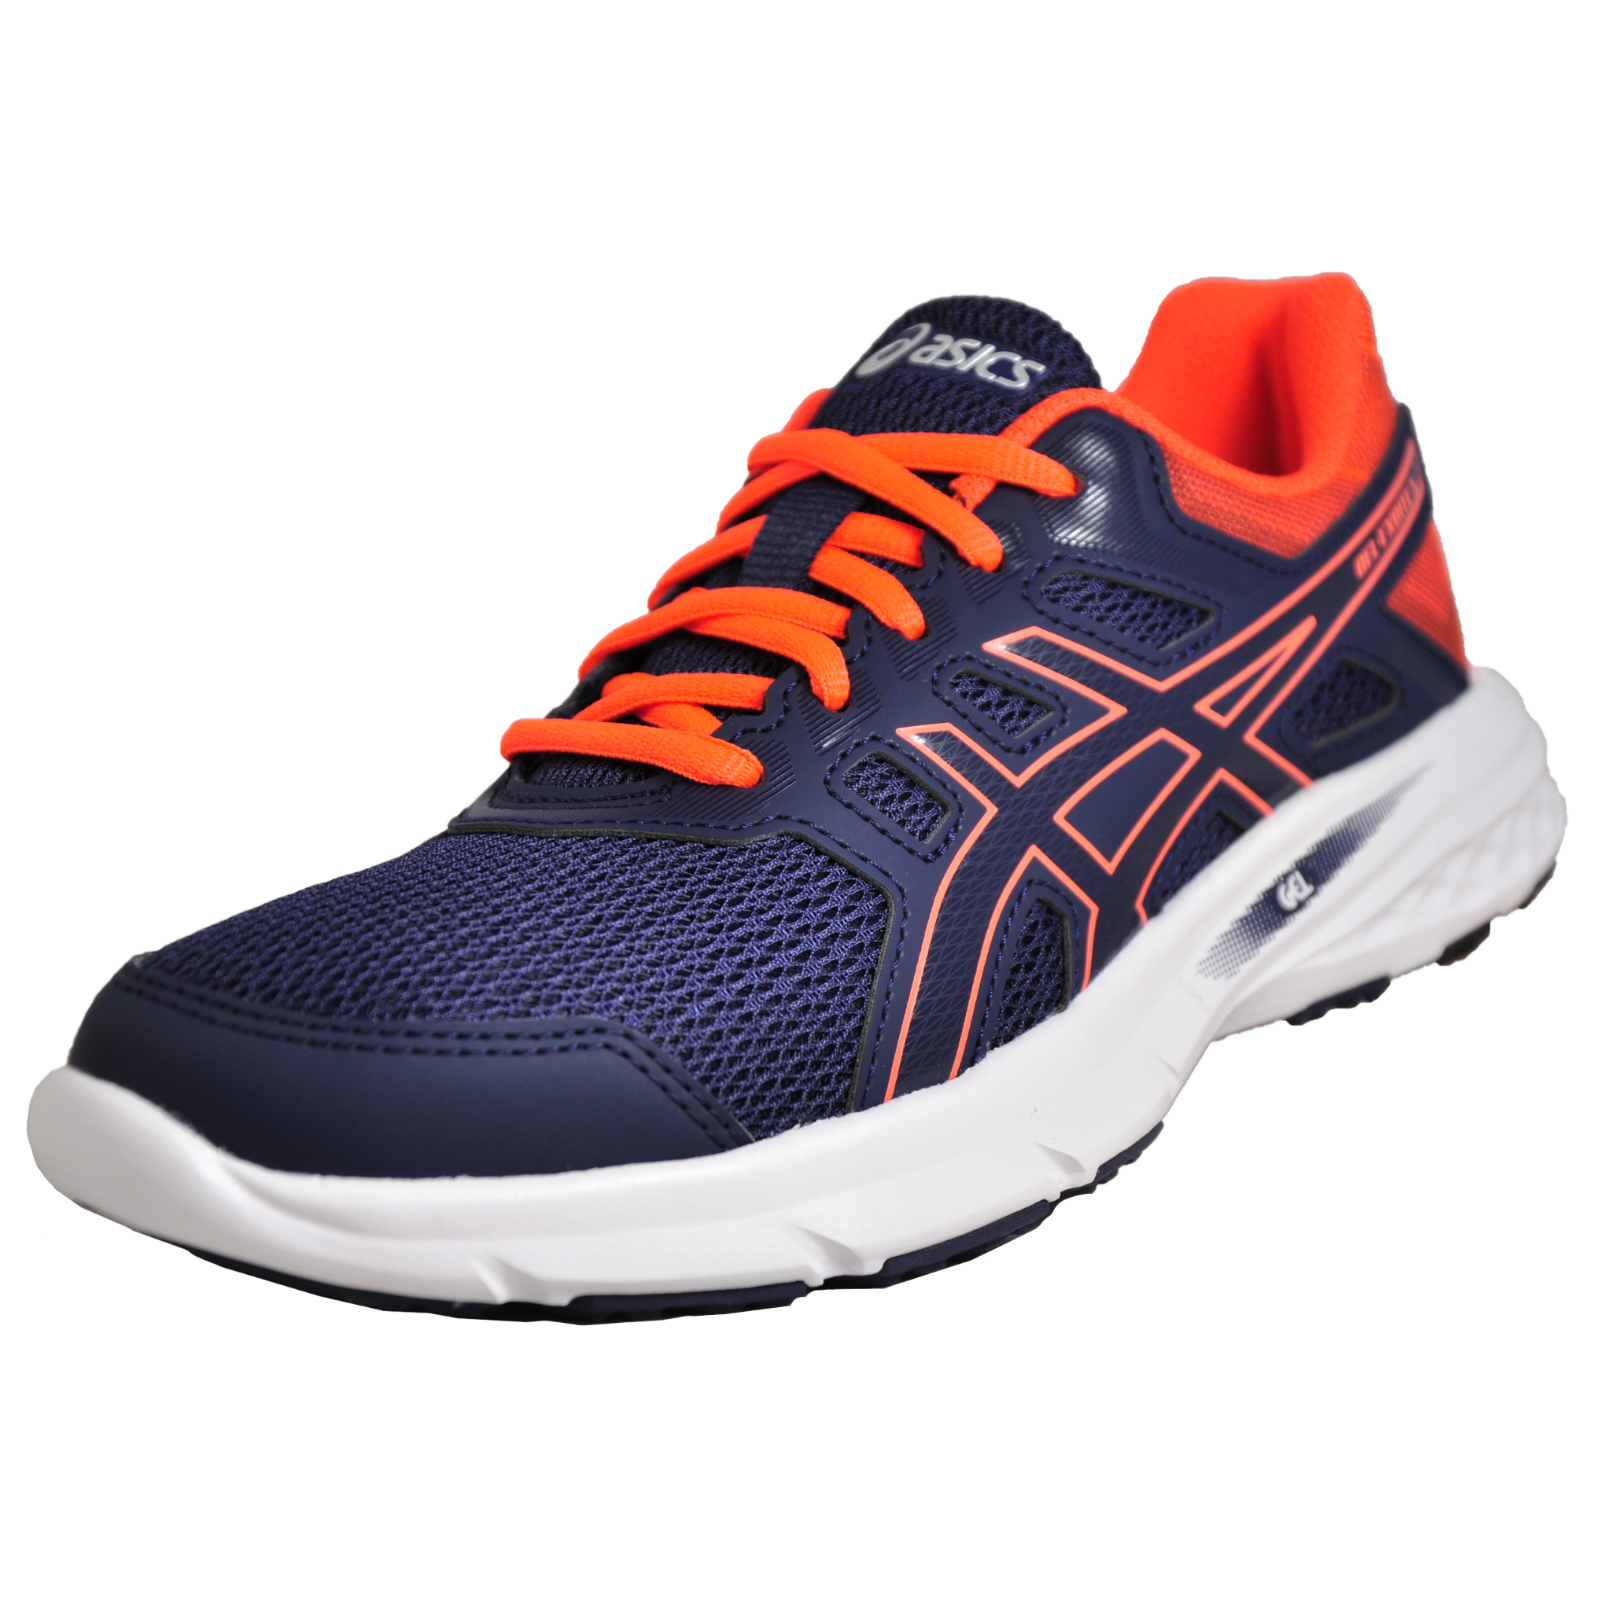 2a51b8824c8a Asics Gel-Excite 5 Women s Running Shoes Fitness Gym Workout Trainers